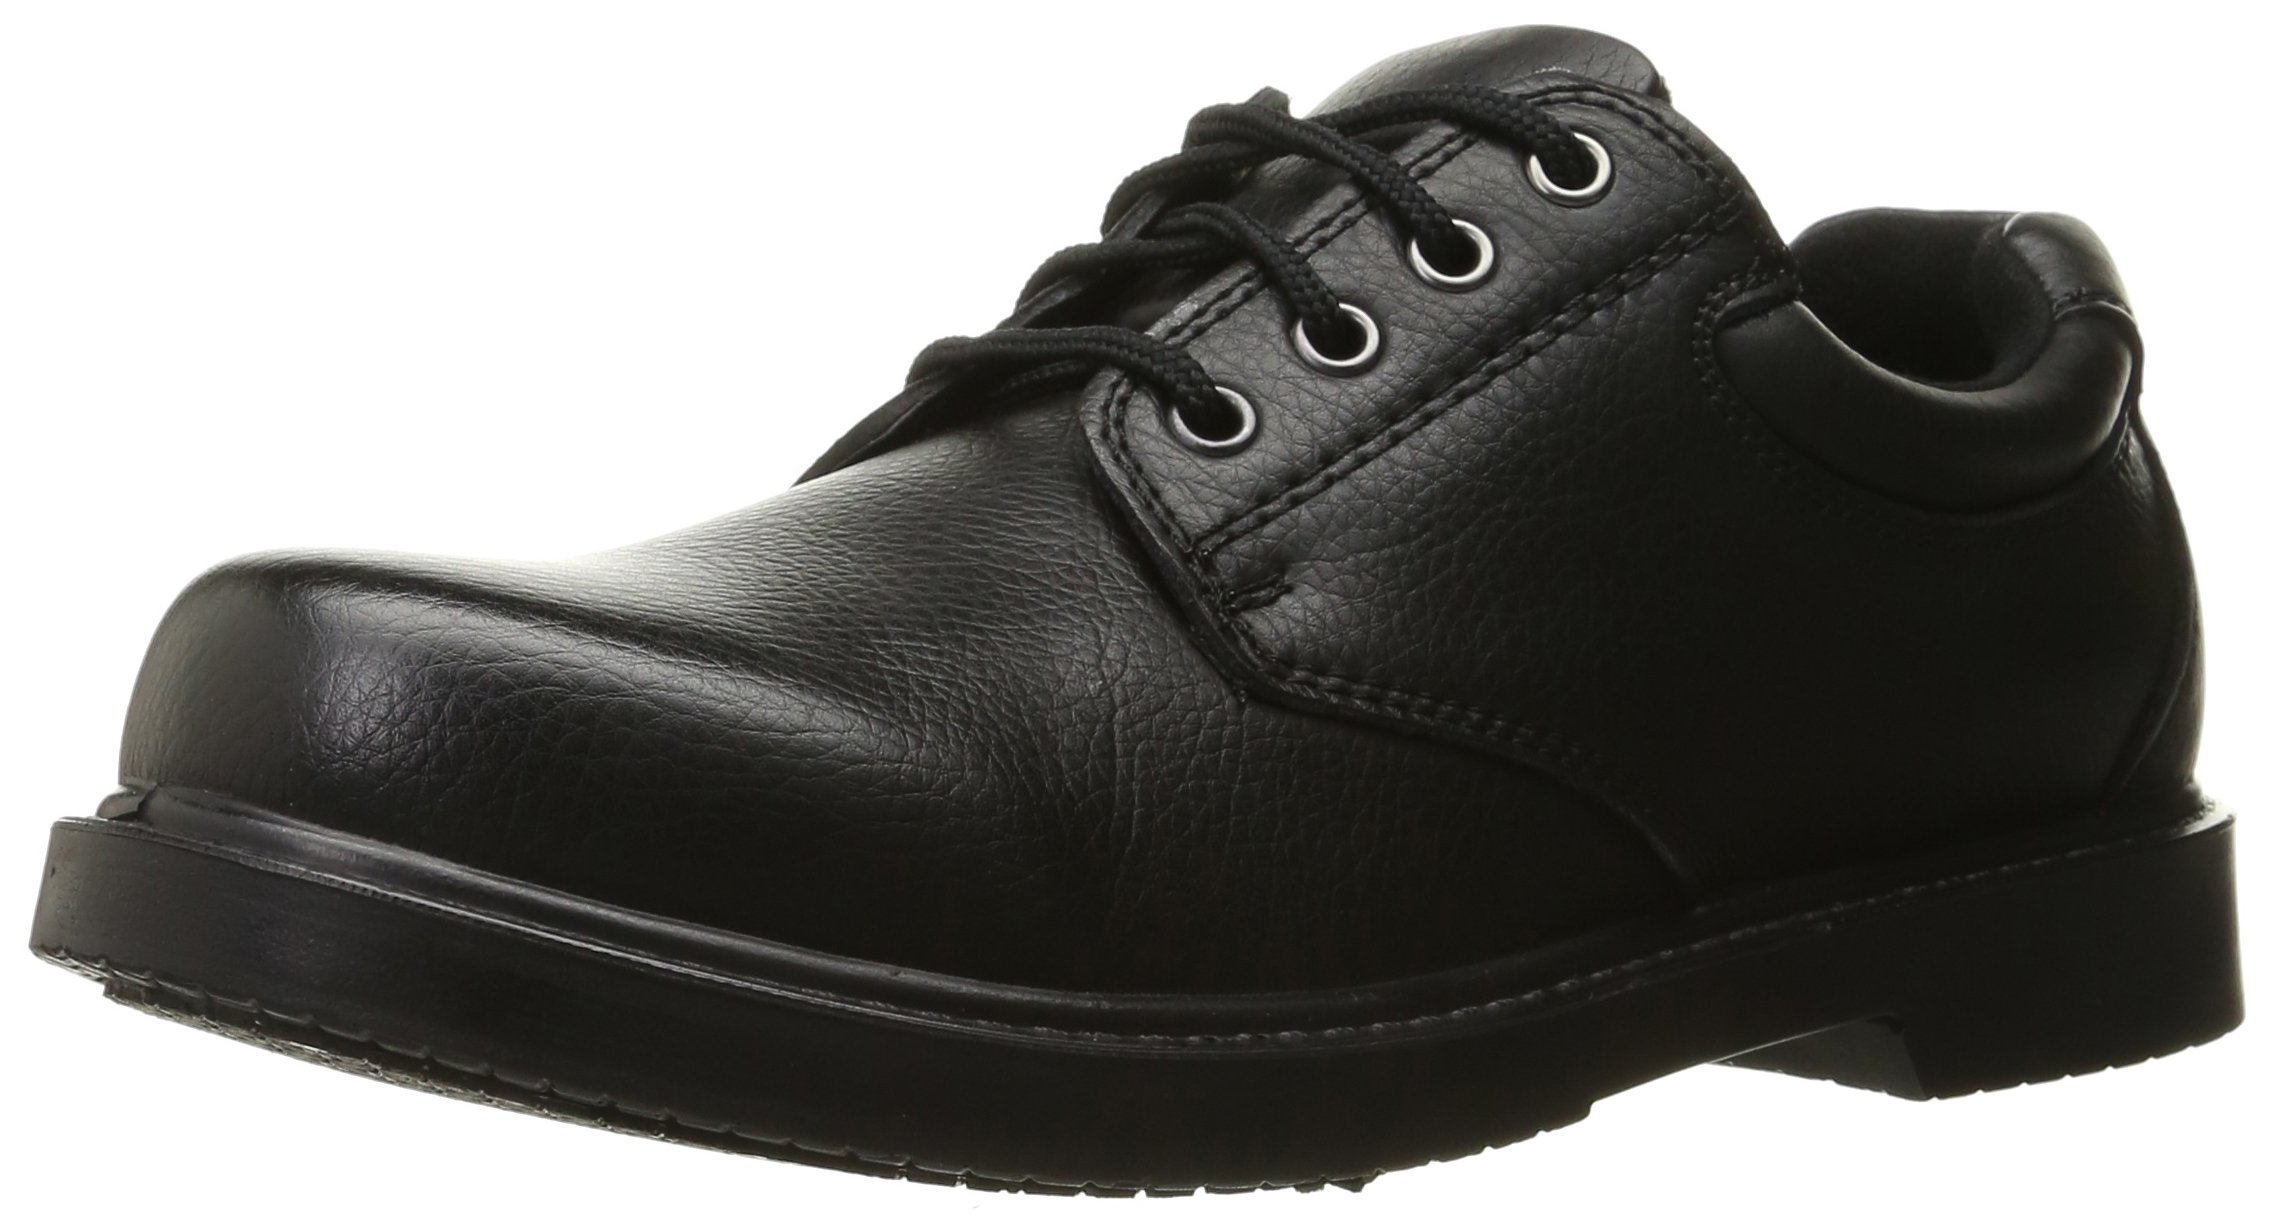 Dr. Scholl's Shoes Men's Dave Uniform Dress Shoe, Black, 12 W US